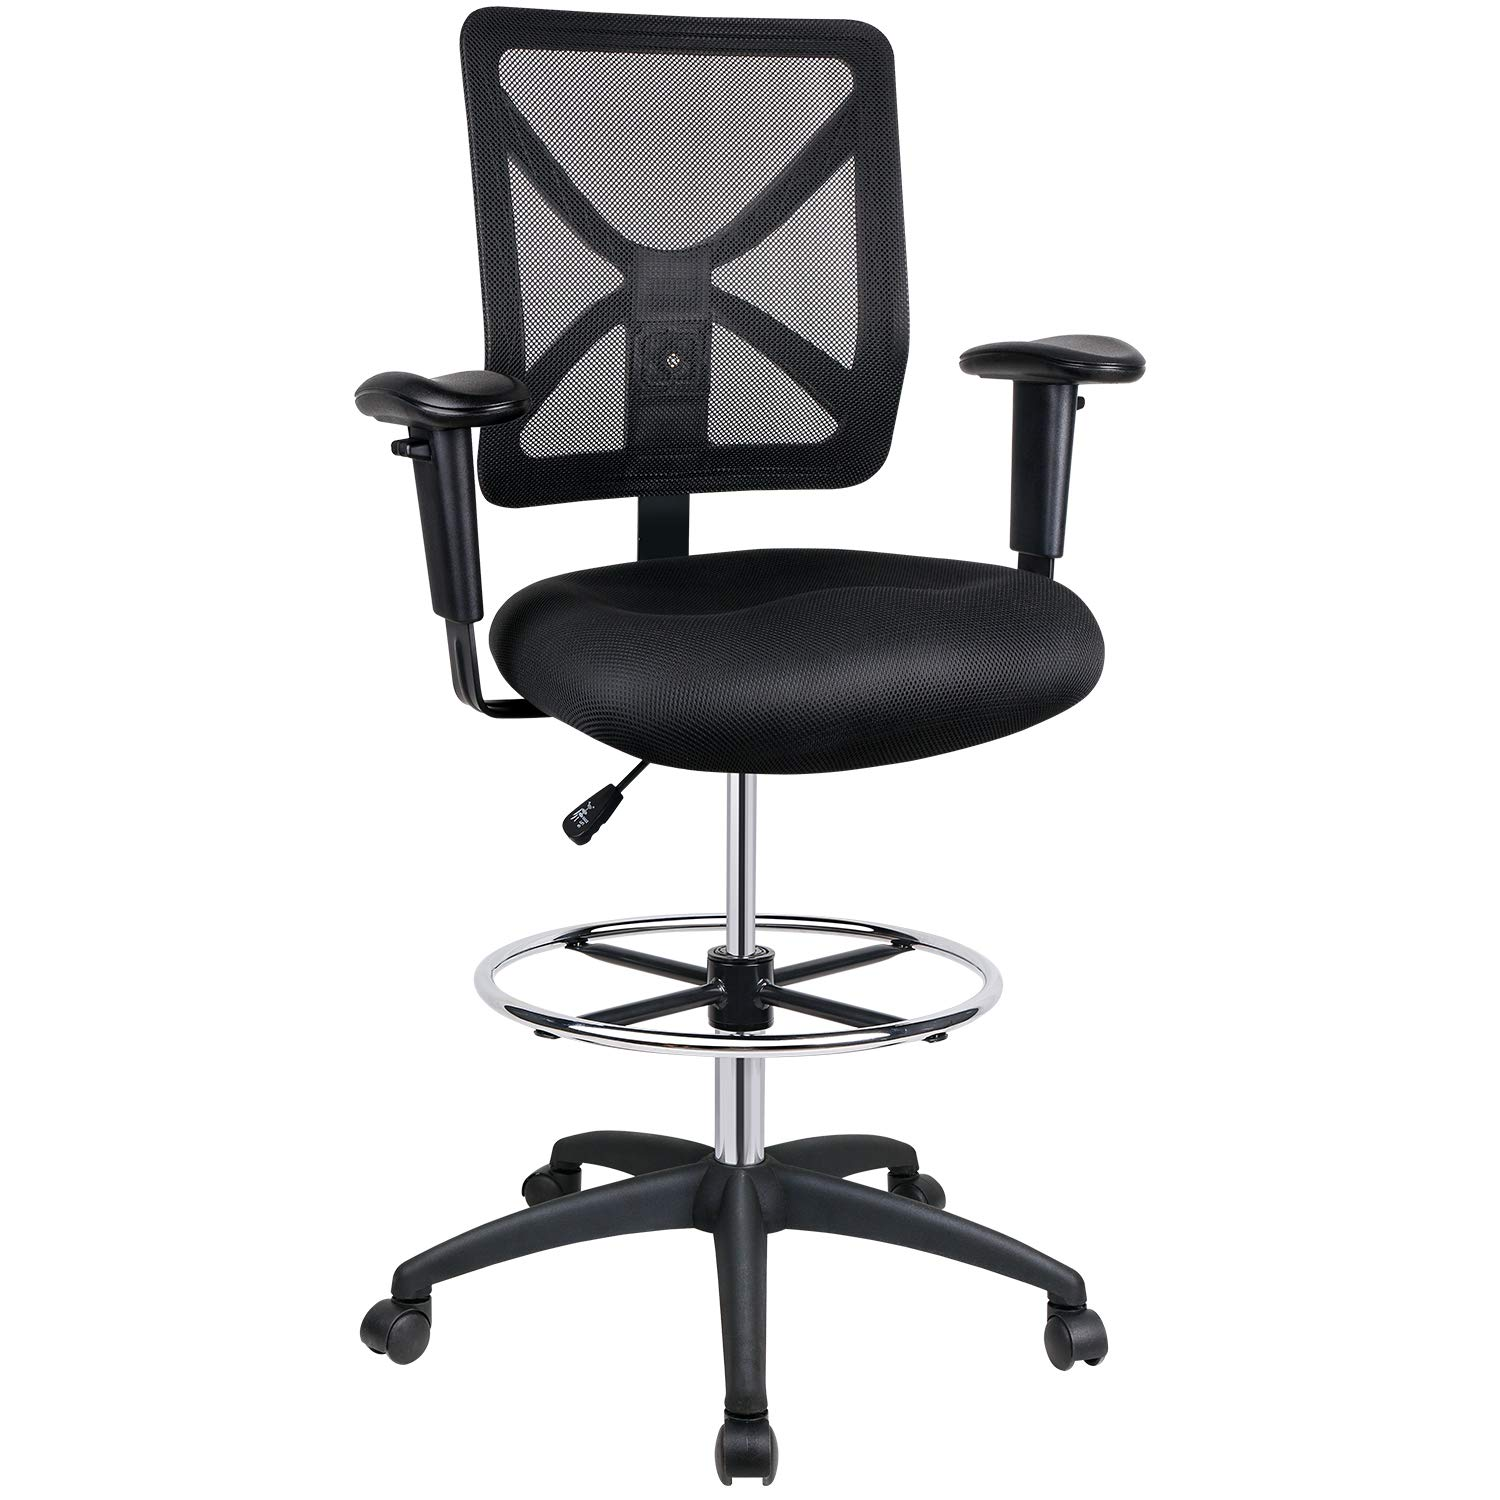 Leopard Mesh Drafting Chair Mid-Back, Adjustable Office Chair with Wheels with Footring, Swivel Work Stools with Back with Armrest, Black by Leopard Outdoor Products